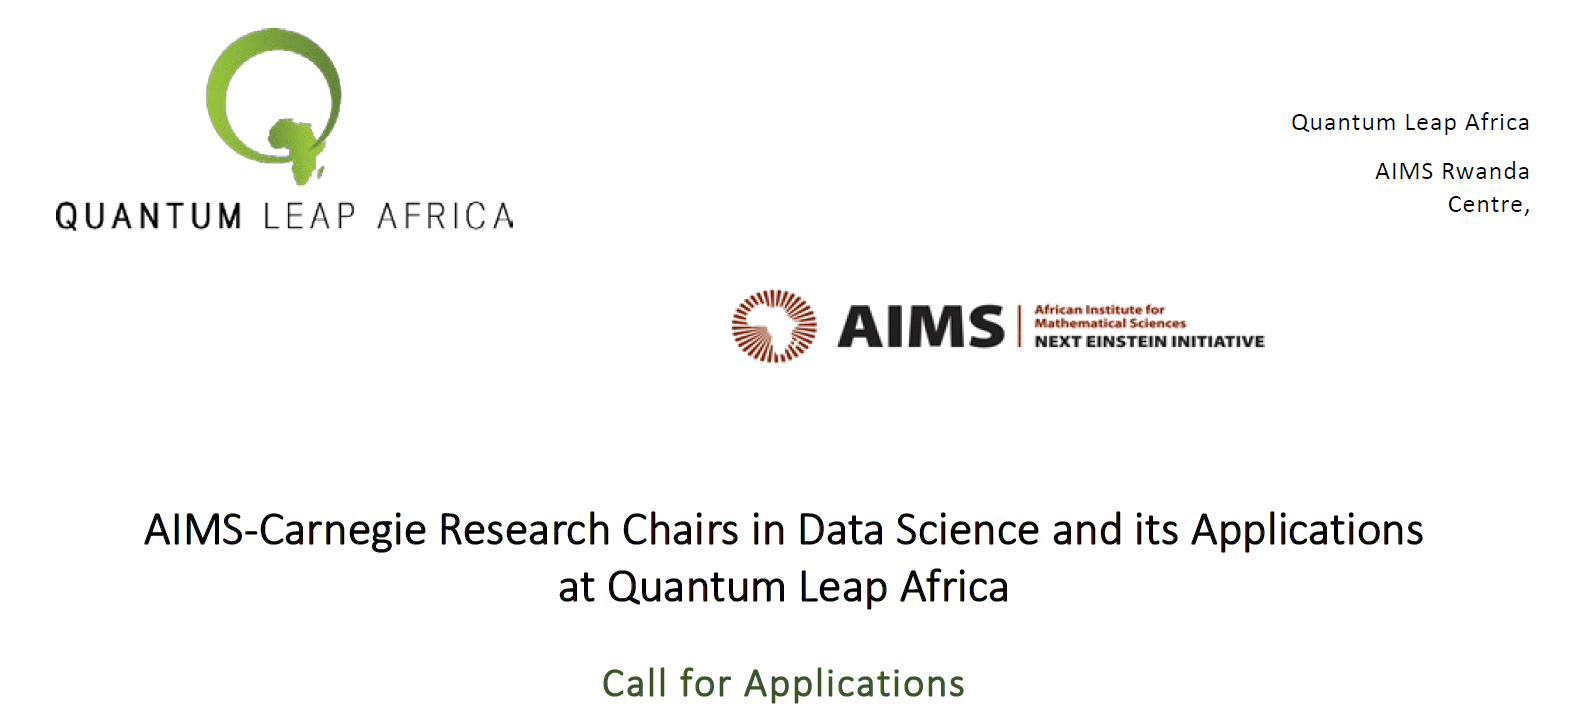 The AIMS-Carnegie Research study Chairs program in Data Science at Radical Change Africa